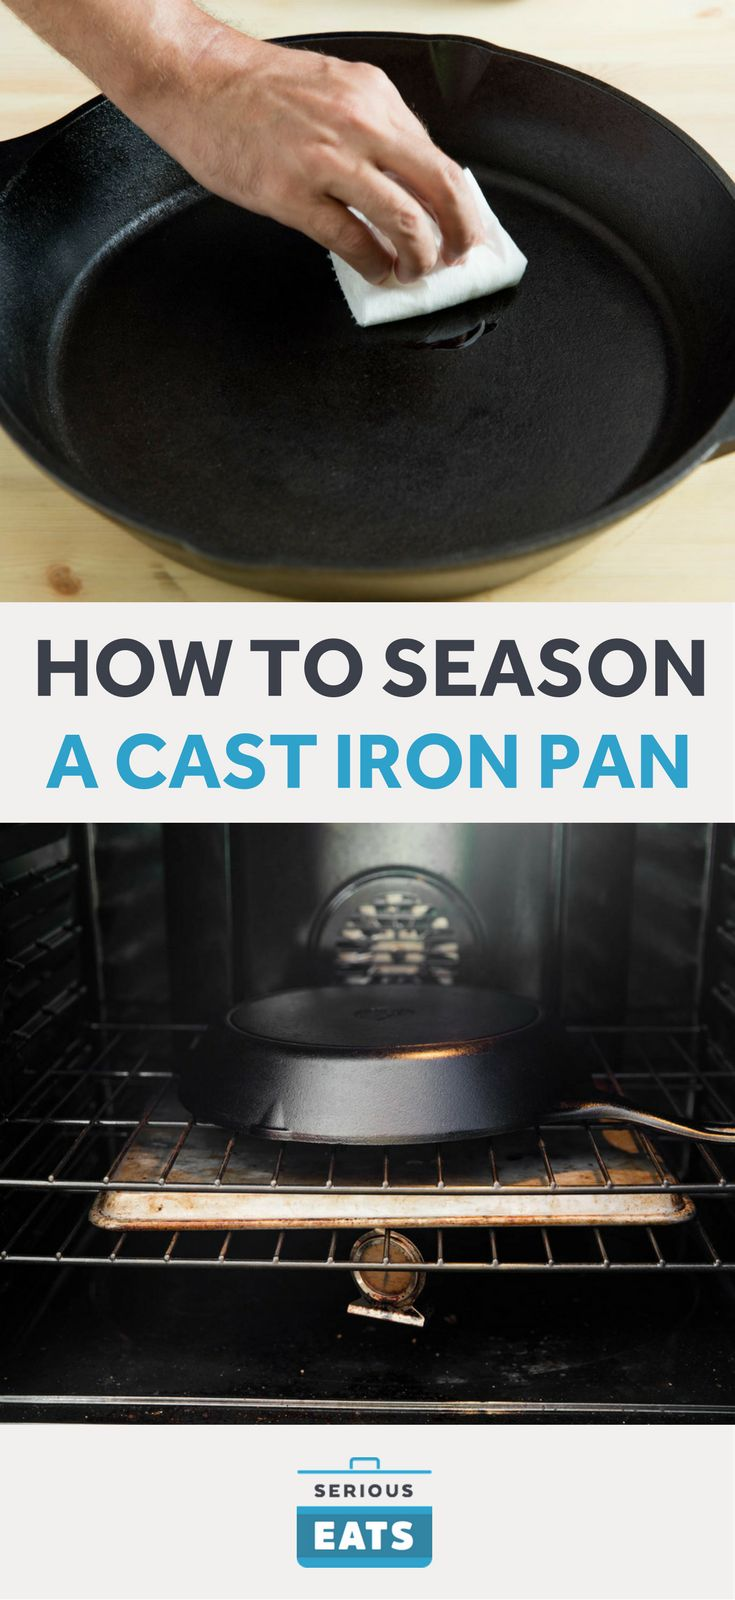 When you get a new cast iron pan, put it through one basic round of seasoning, then just...use your pan. Yeah, it really is that simple.